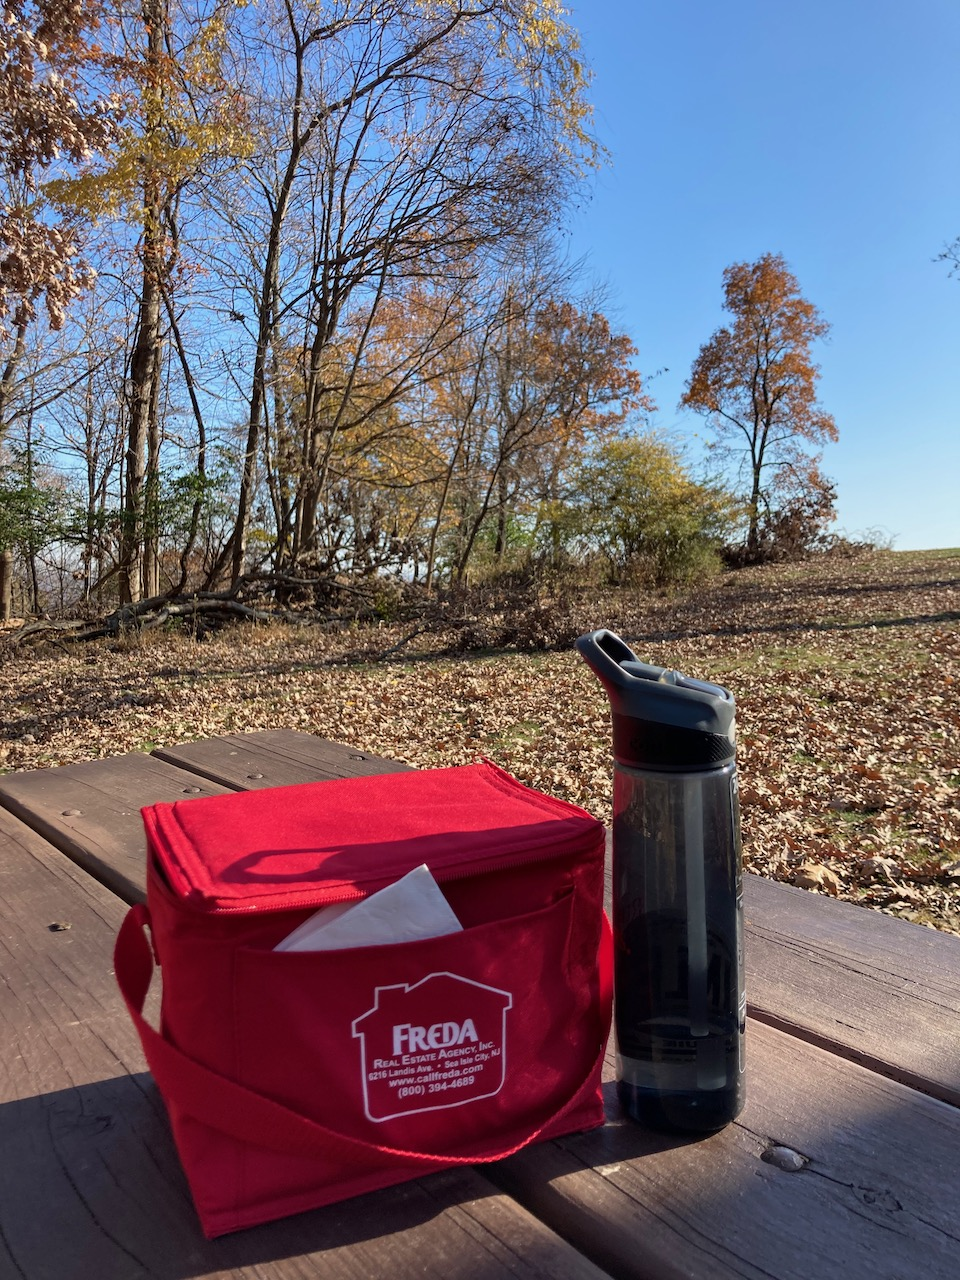 Picnic lunch and water bottle on table.